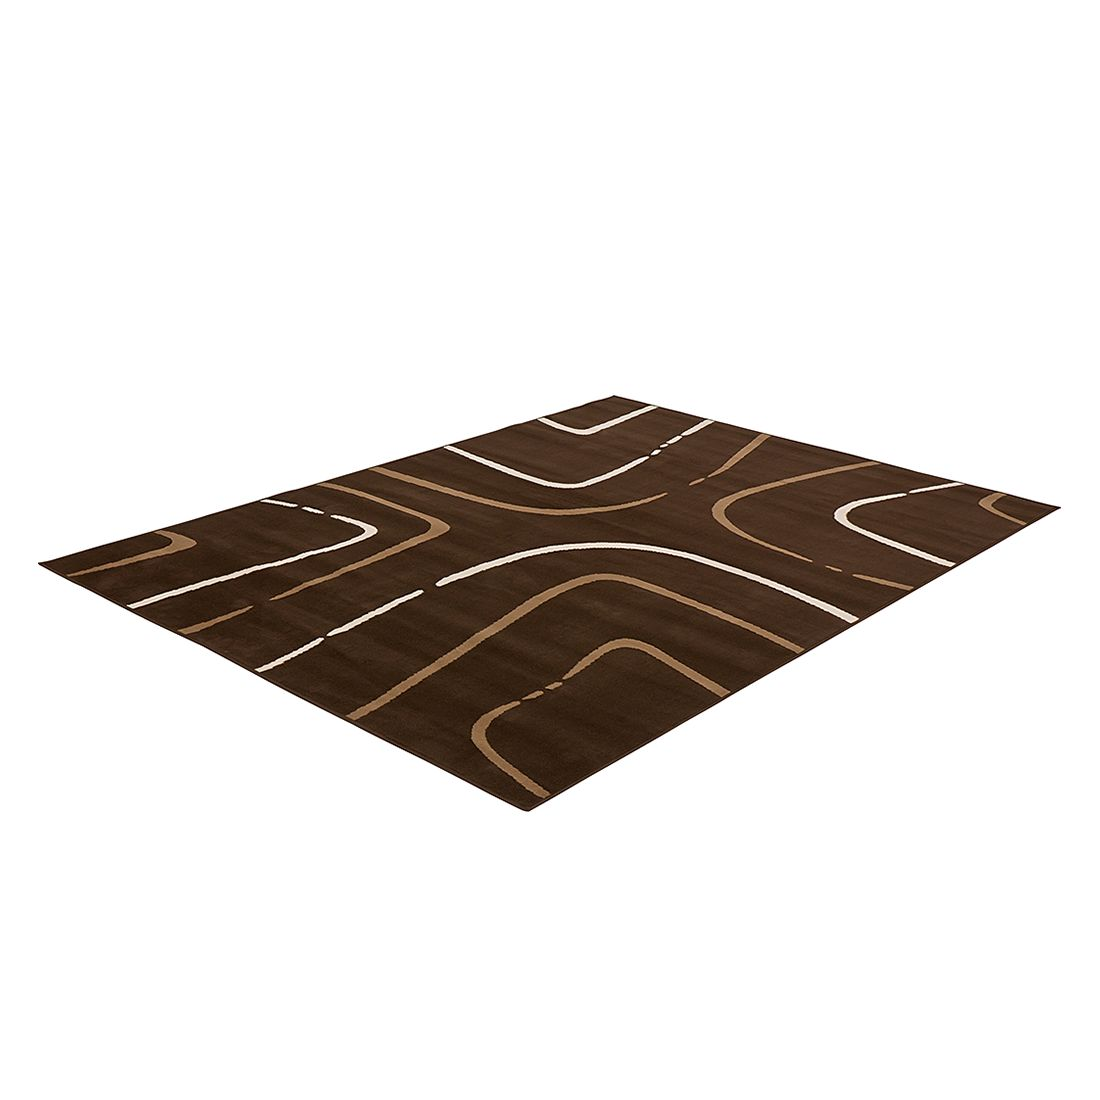 Teppich Prime Pile Abstract – Braun – 70 x 140 cm, Hanse Home Collection kaufen